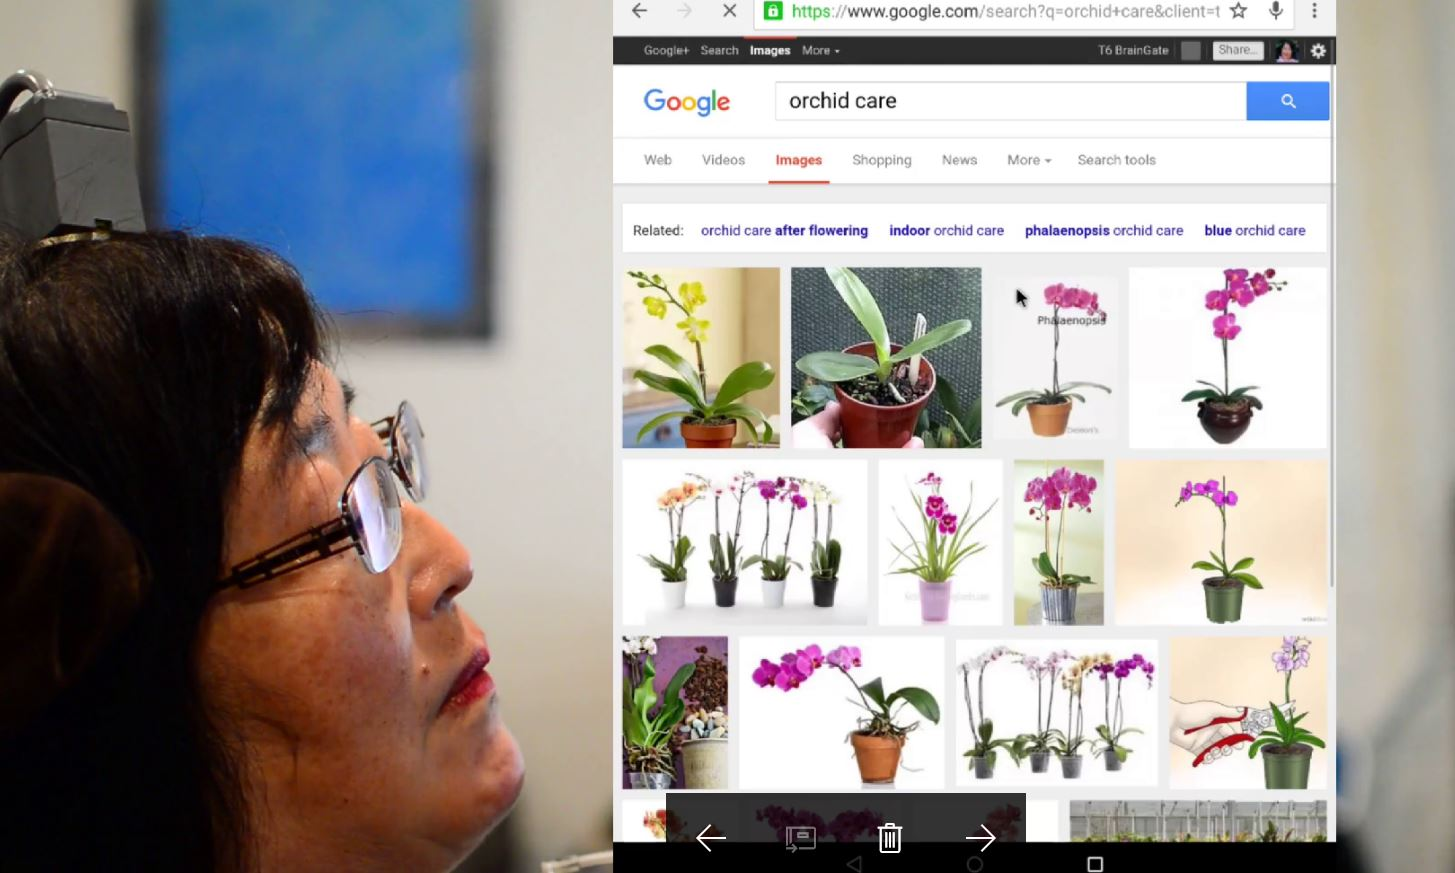 Orchid search.